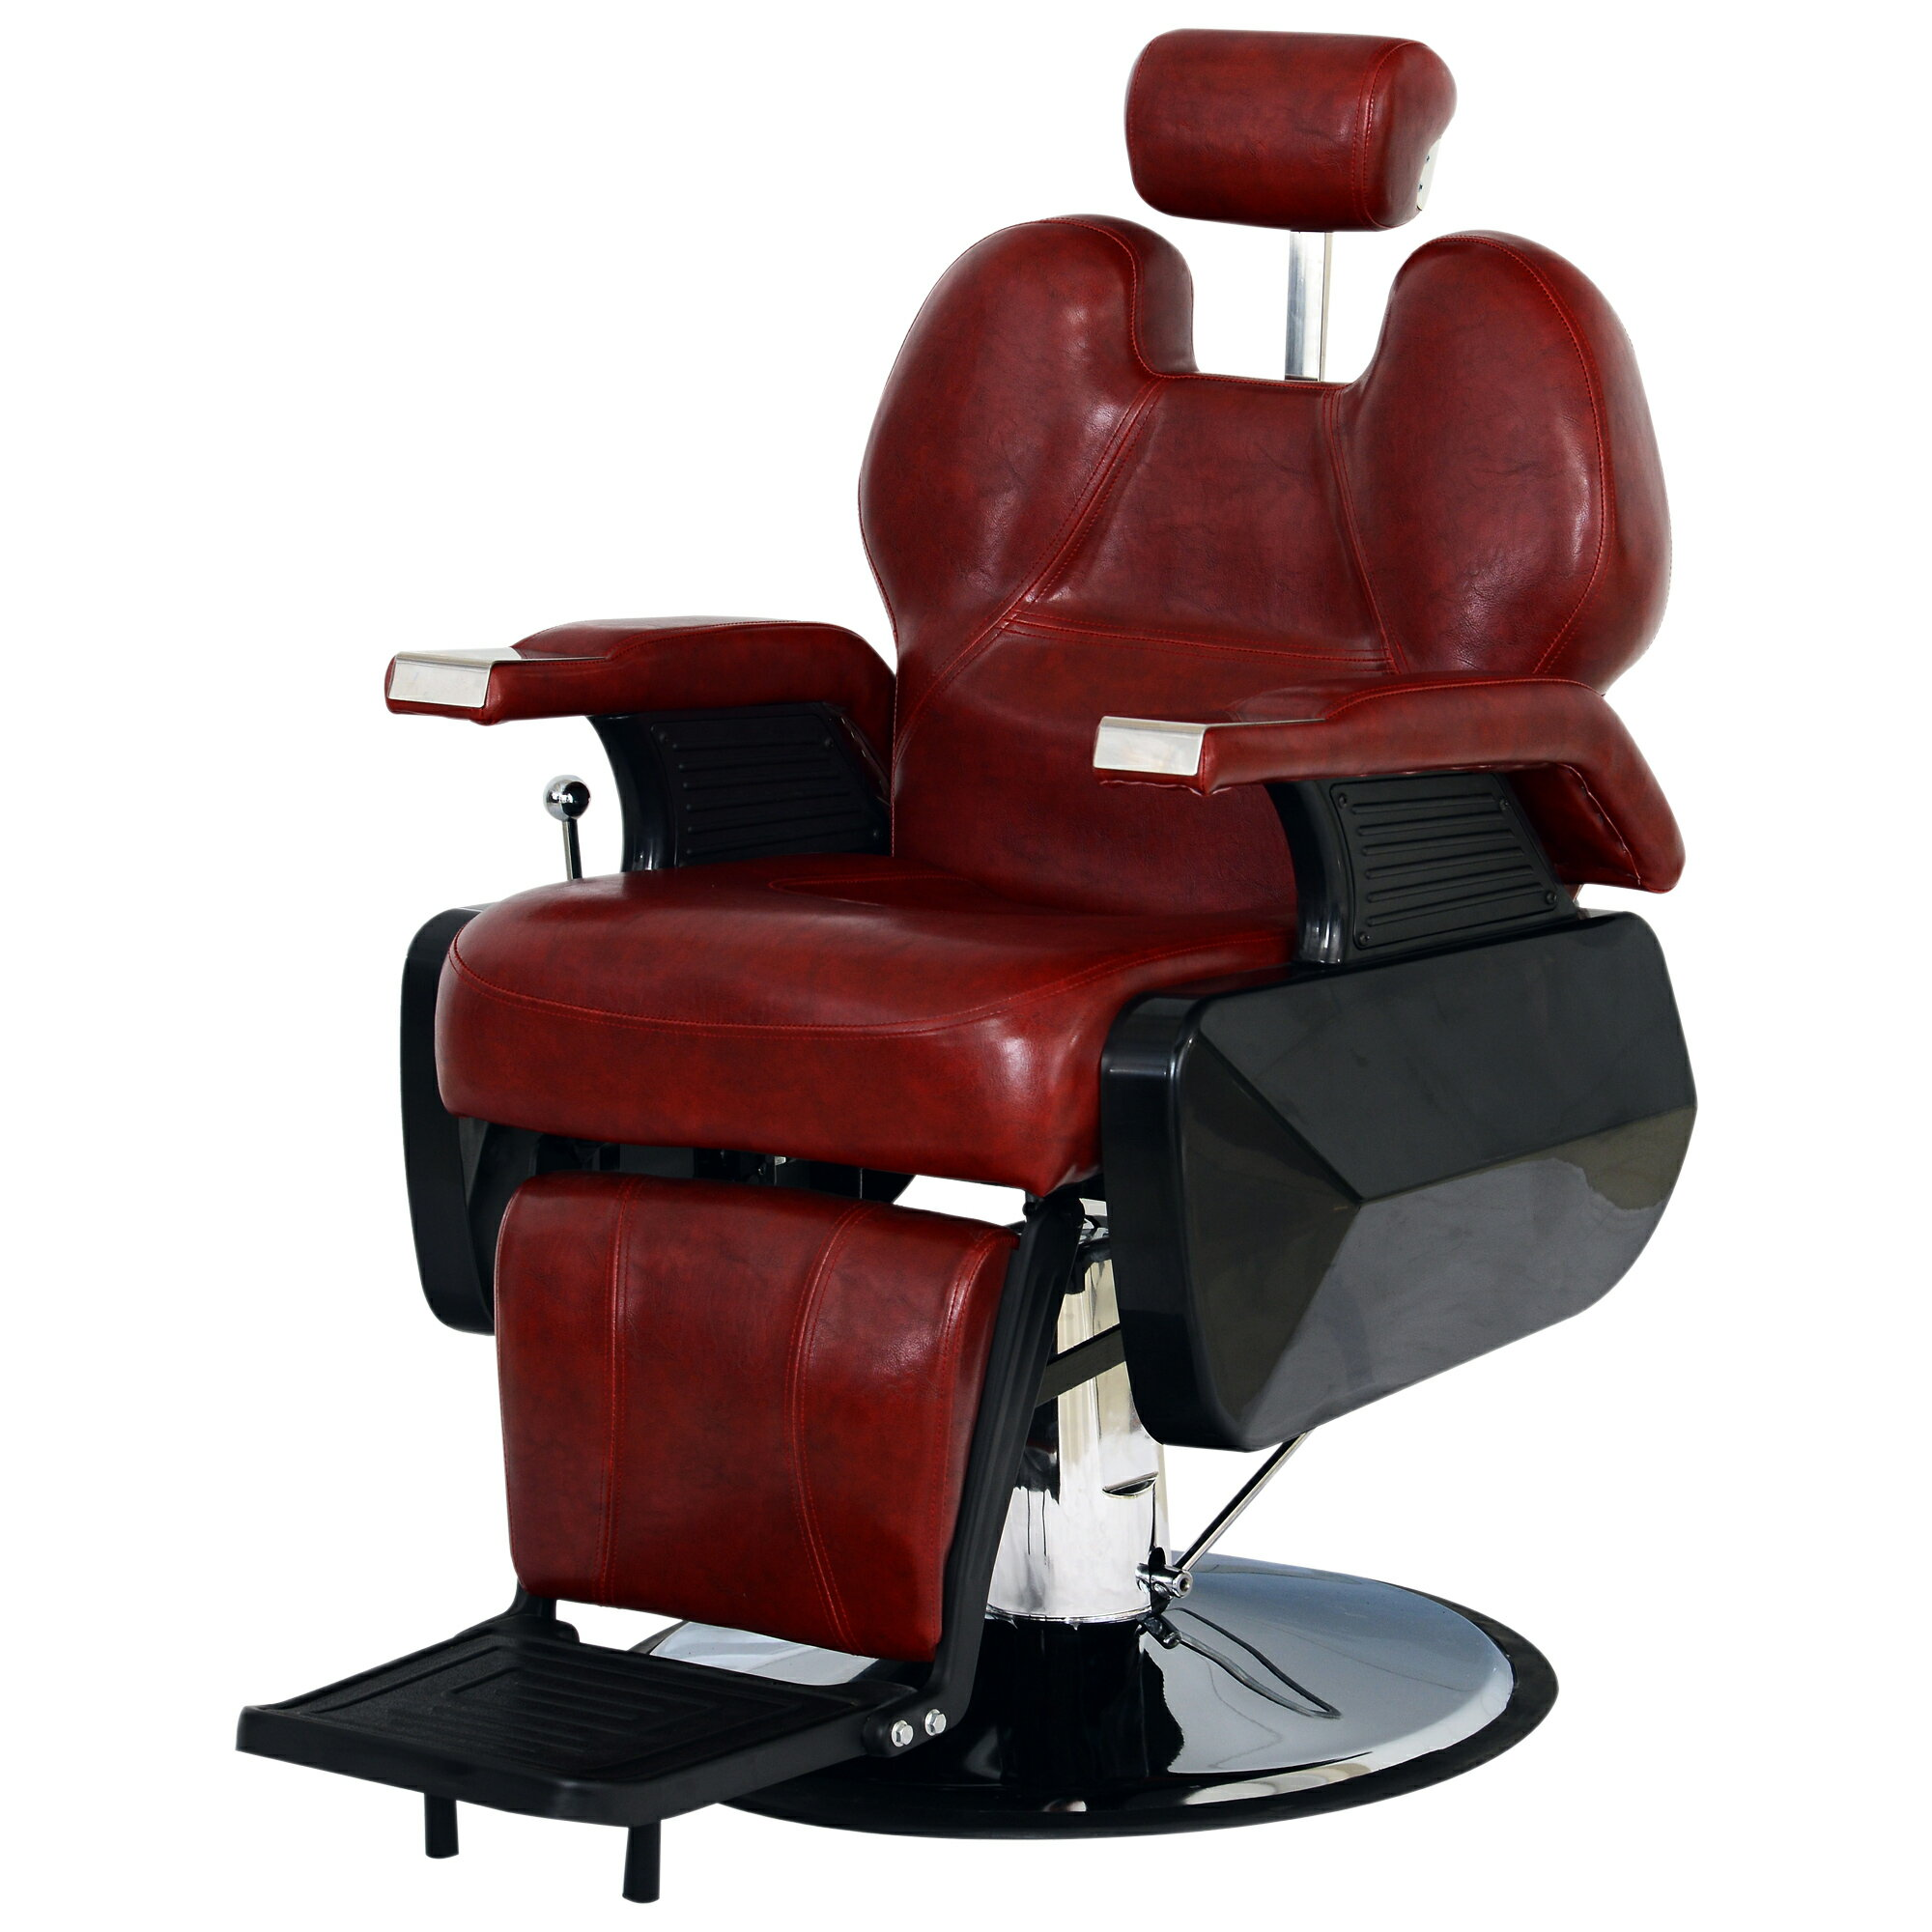 gas wiring heater dayton diagram 3e382d a946 discount barber chairs wiring resources  a946 discount barber chairs wiring